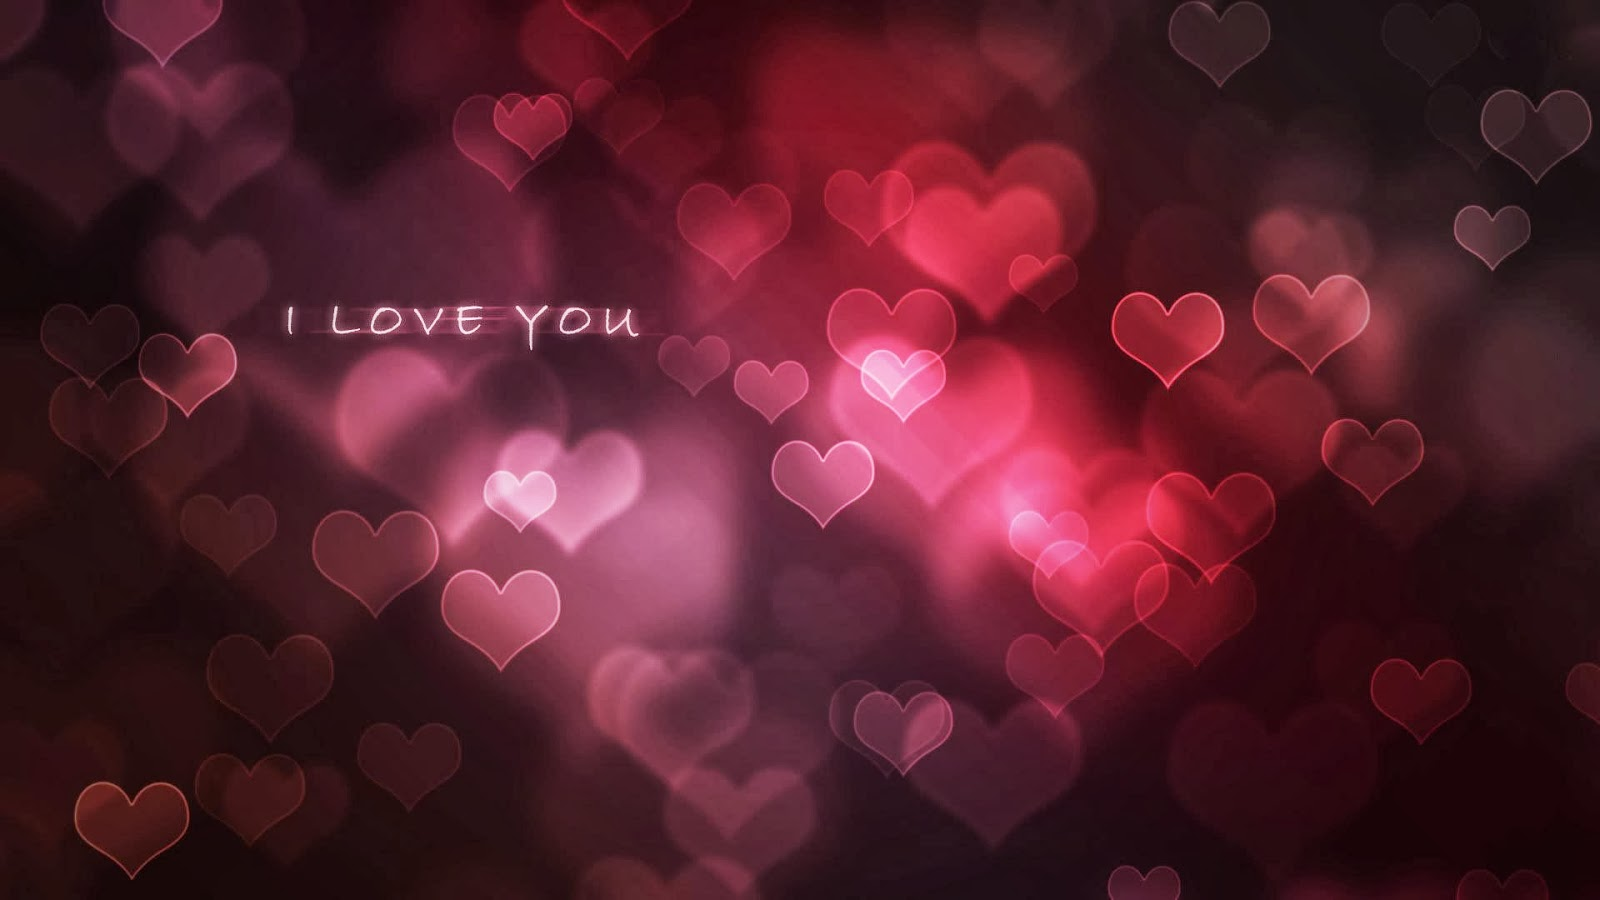 I love you Text Pictures for Facebook HD Images Free Download PIXHOME